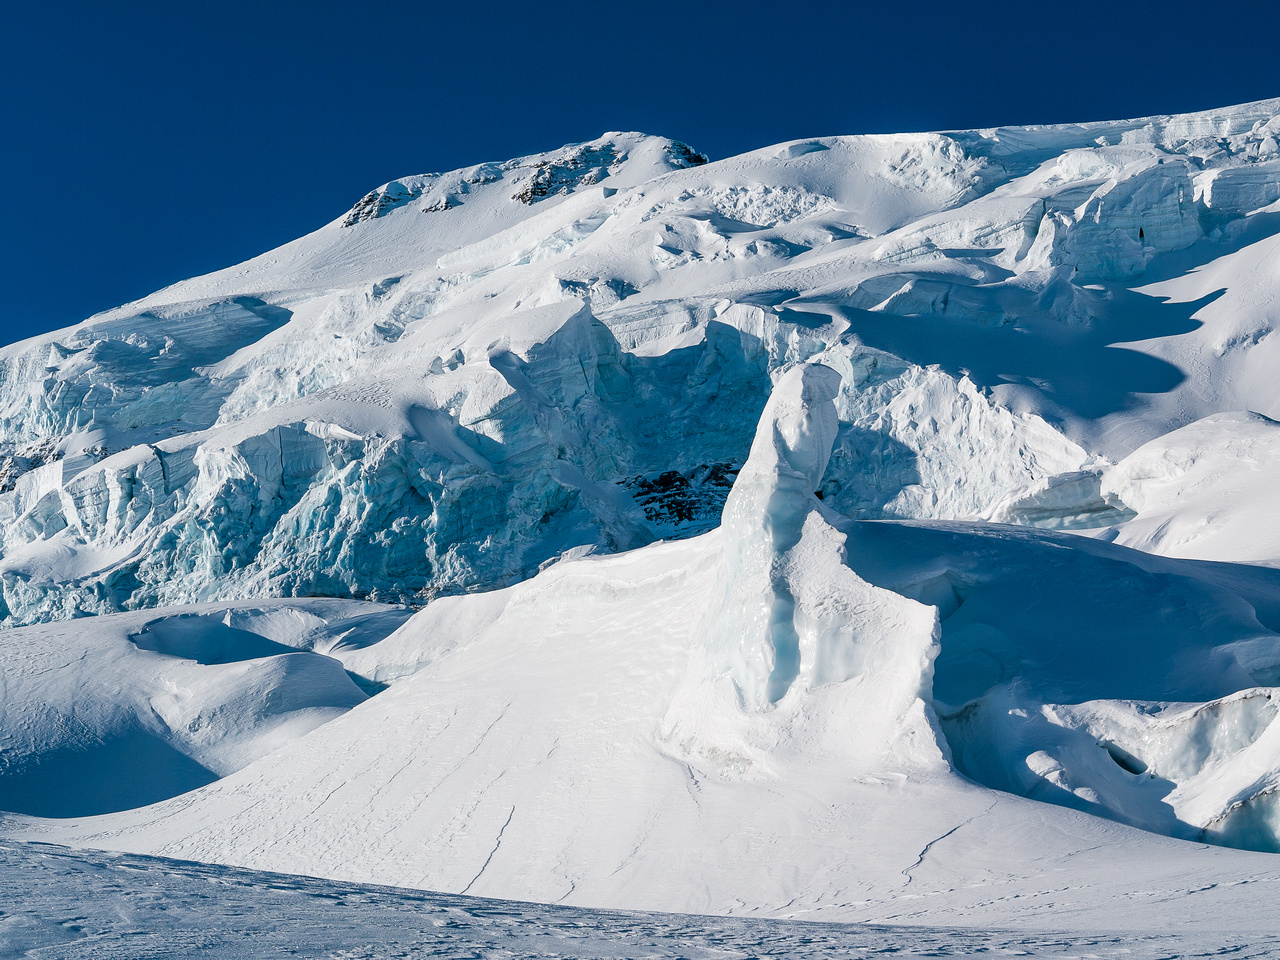 Crevasses and seracs on Balfour's east aspect.